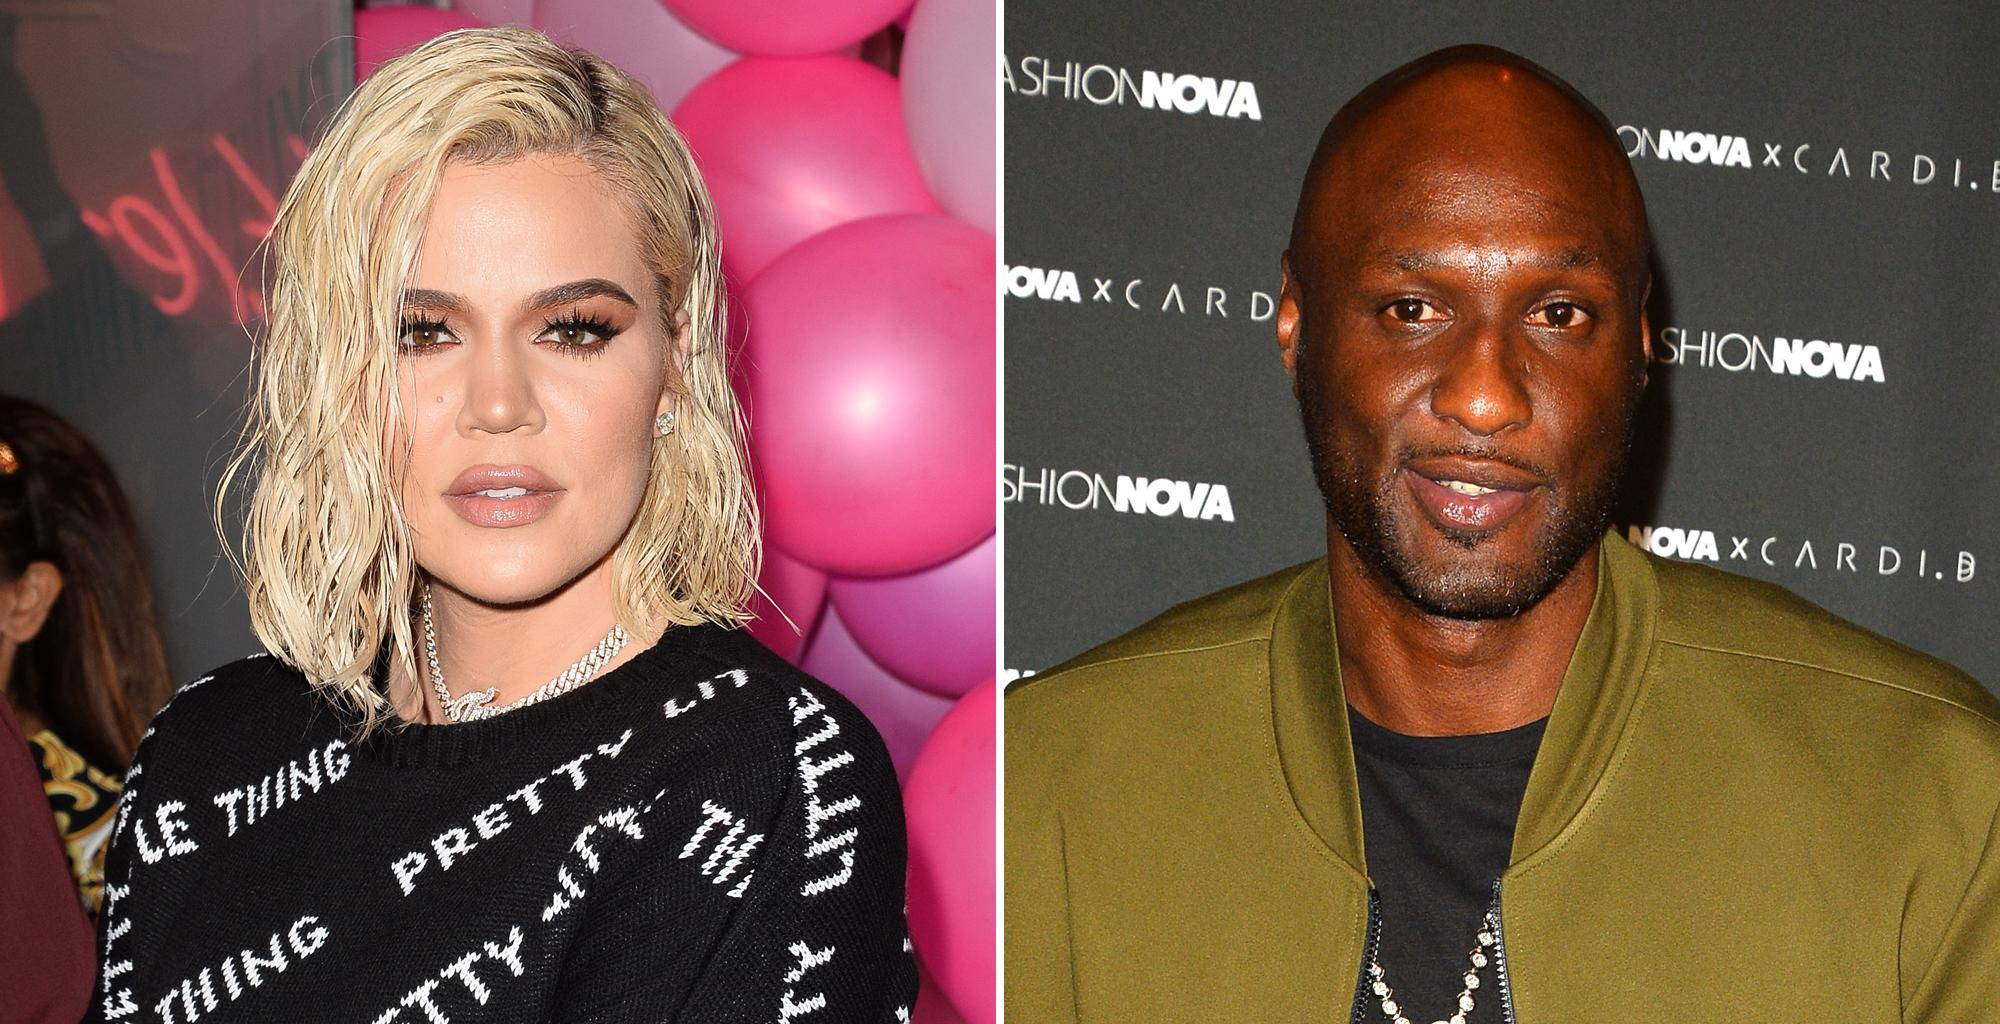 Khloe Kardashian Reveals How She Really Feels About Lamar Odom's Memoir: 'He's Allowed To Tell His Version'